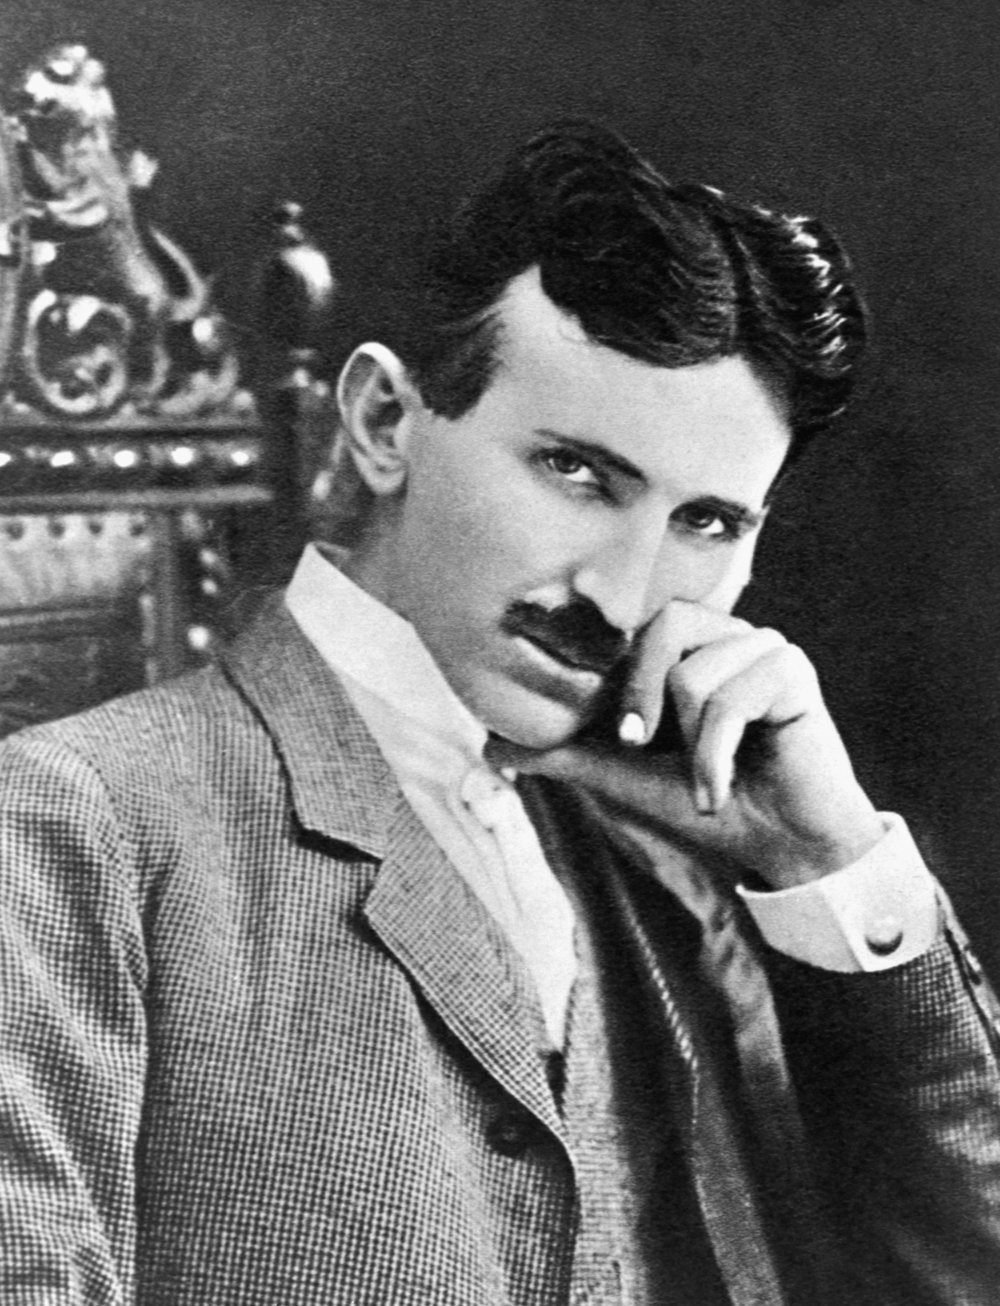 Inventor Nikola Tesla at age 40 in 1896, around the height of his career.